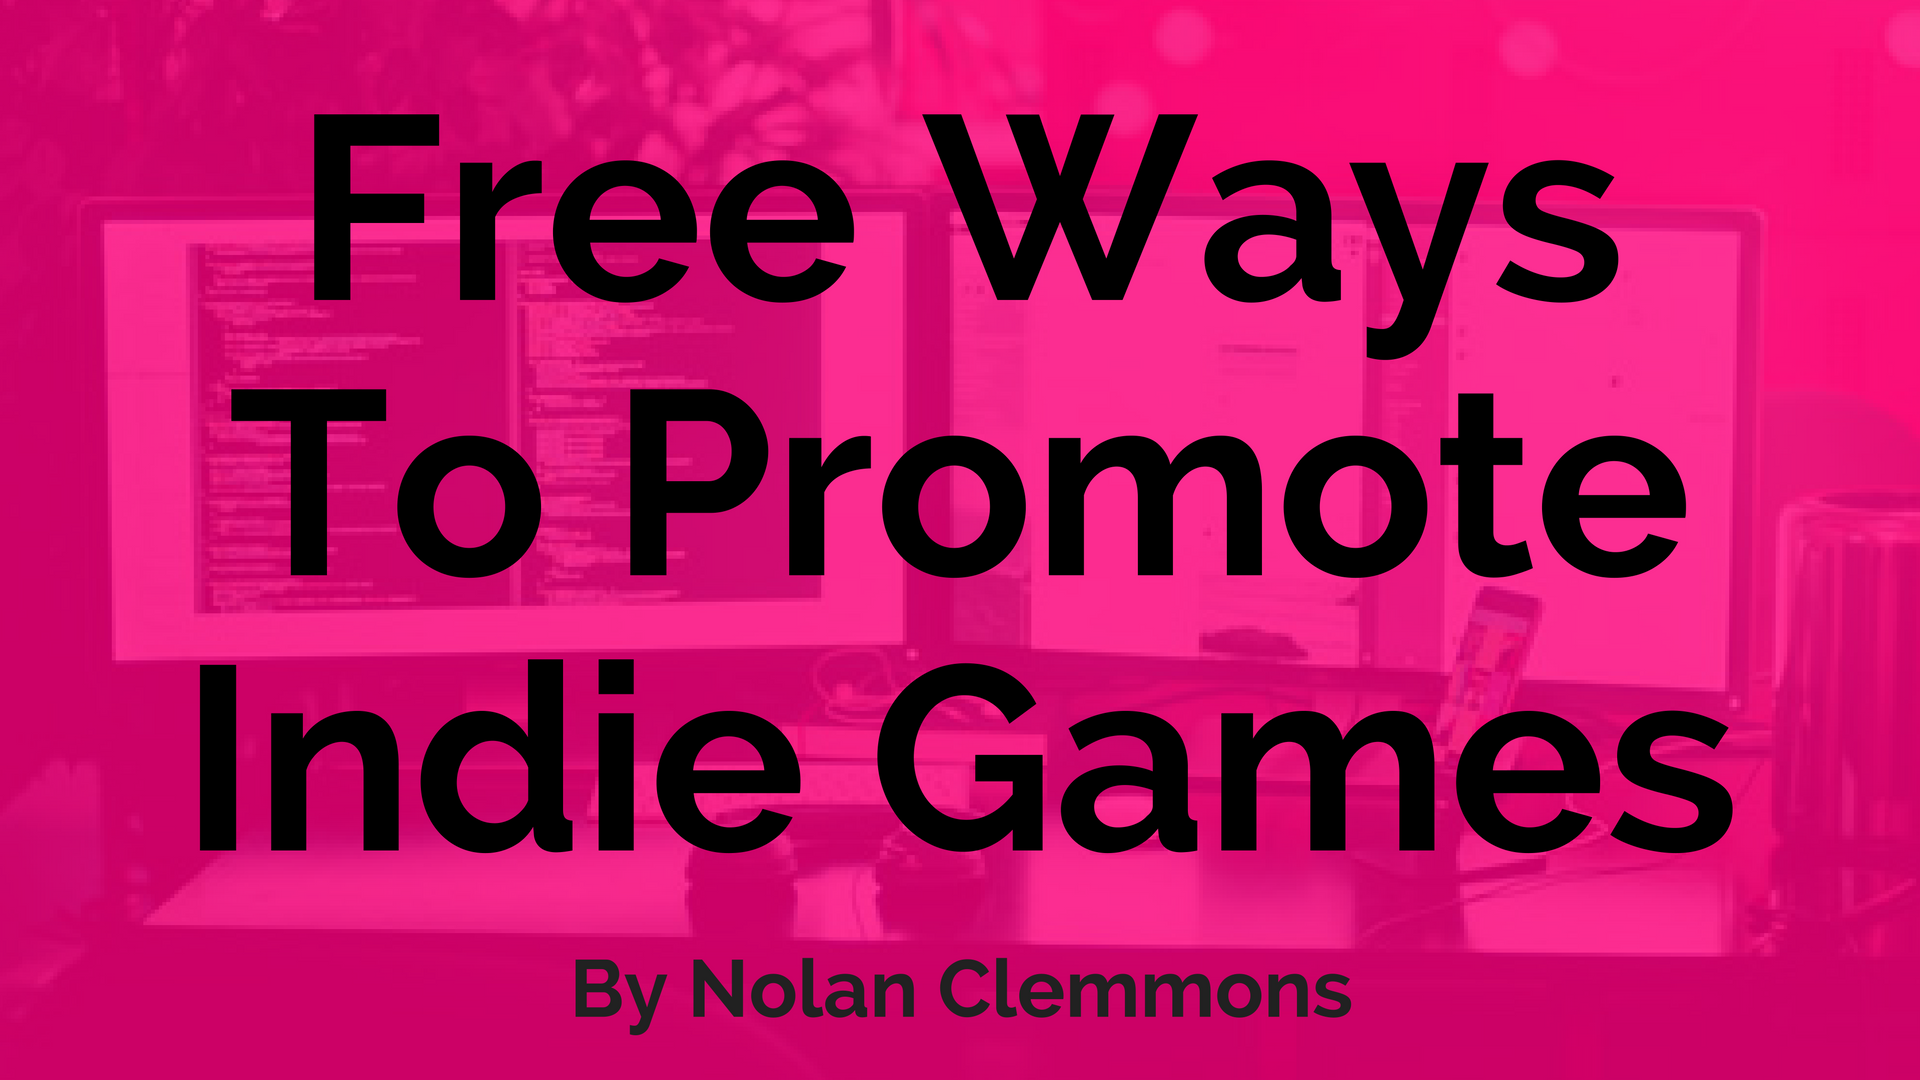 How to Promote Indie Games for Free - Mobile App & Game Marketing Tips